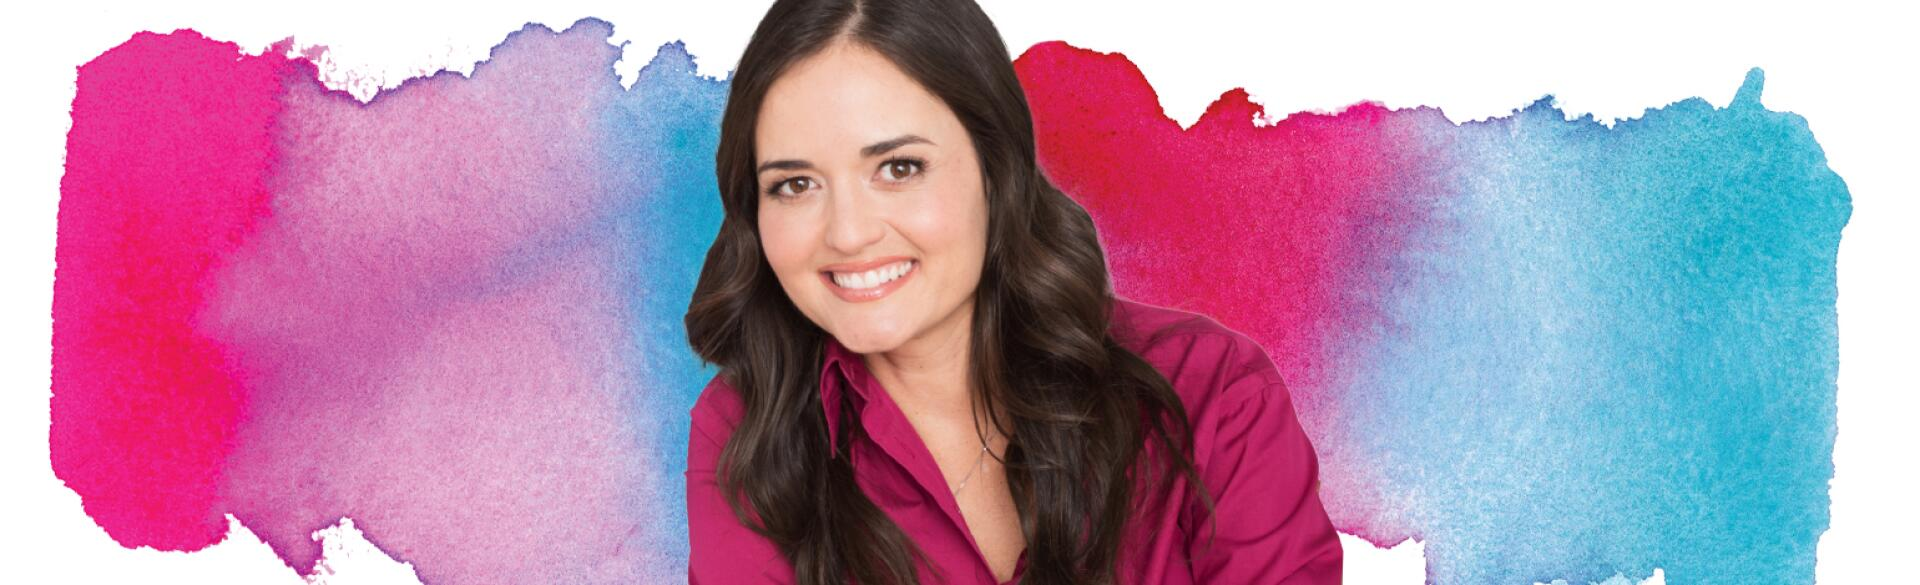 photo of actress Danica McKellar